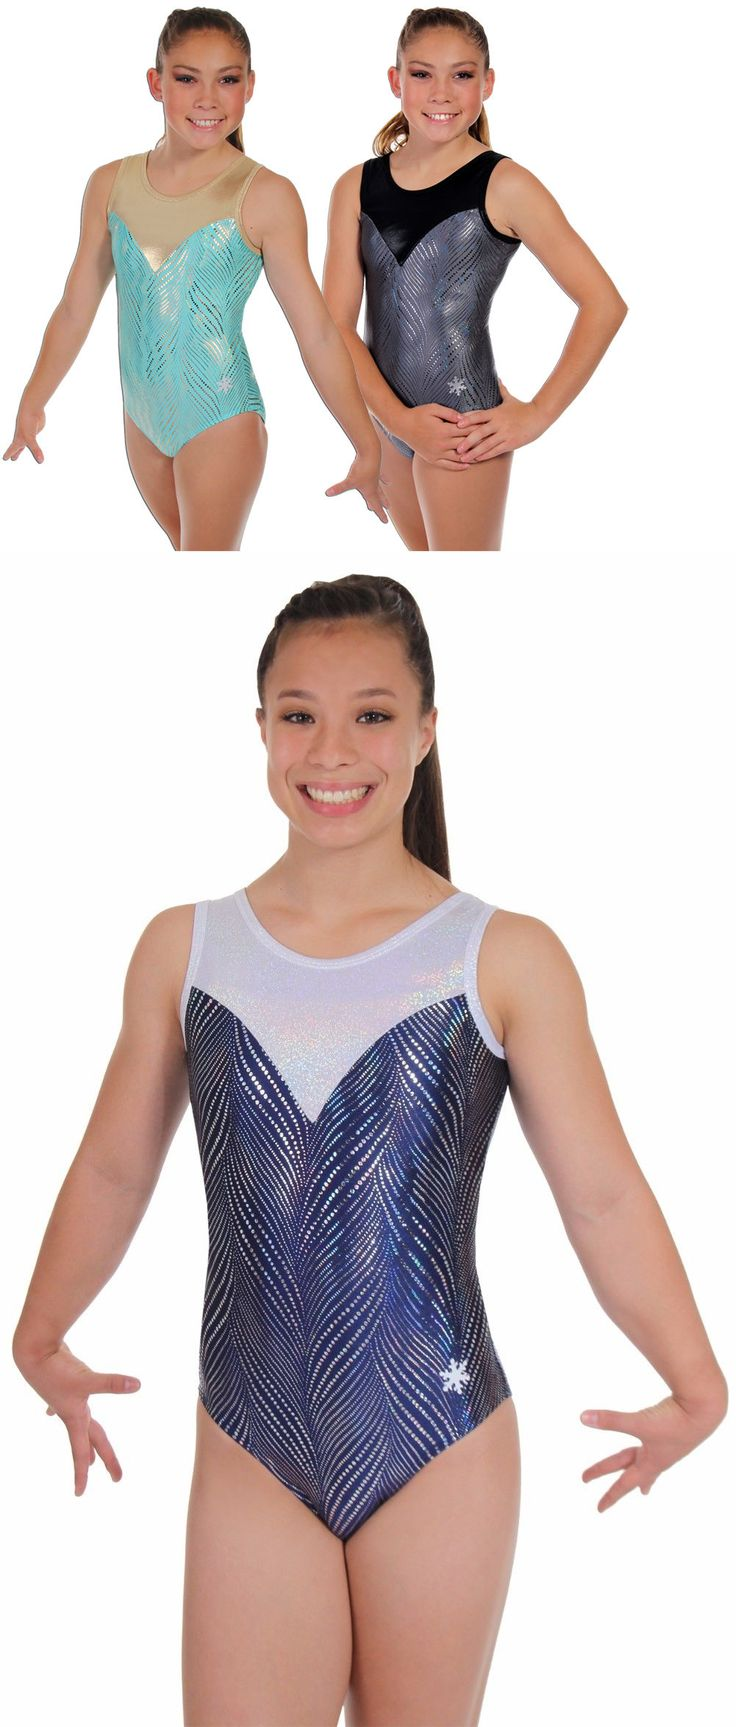 Youth 159170: New!! Finesse Gymnastics Leotard By Snowflake Designs -Grey Or Mint BUY IT NOW ONLY: $44.0